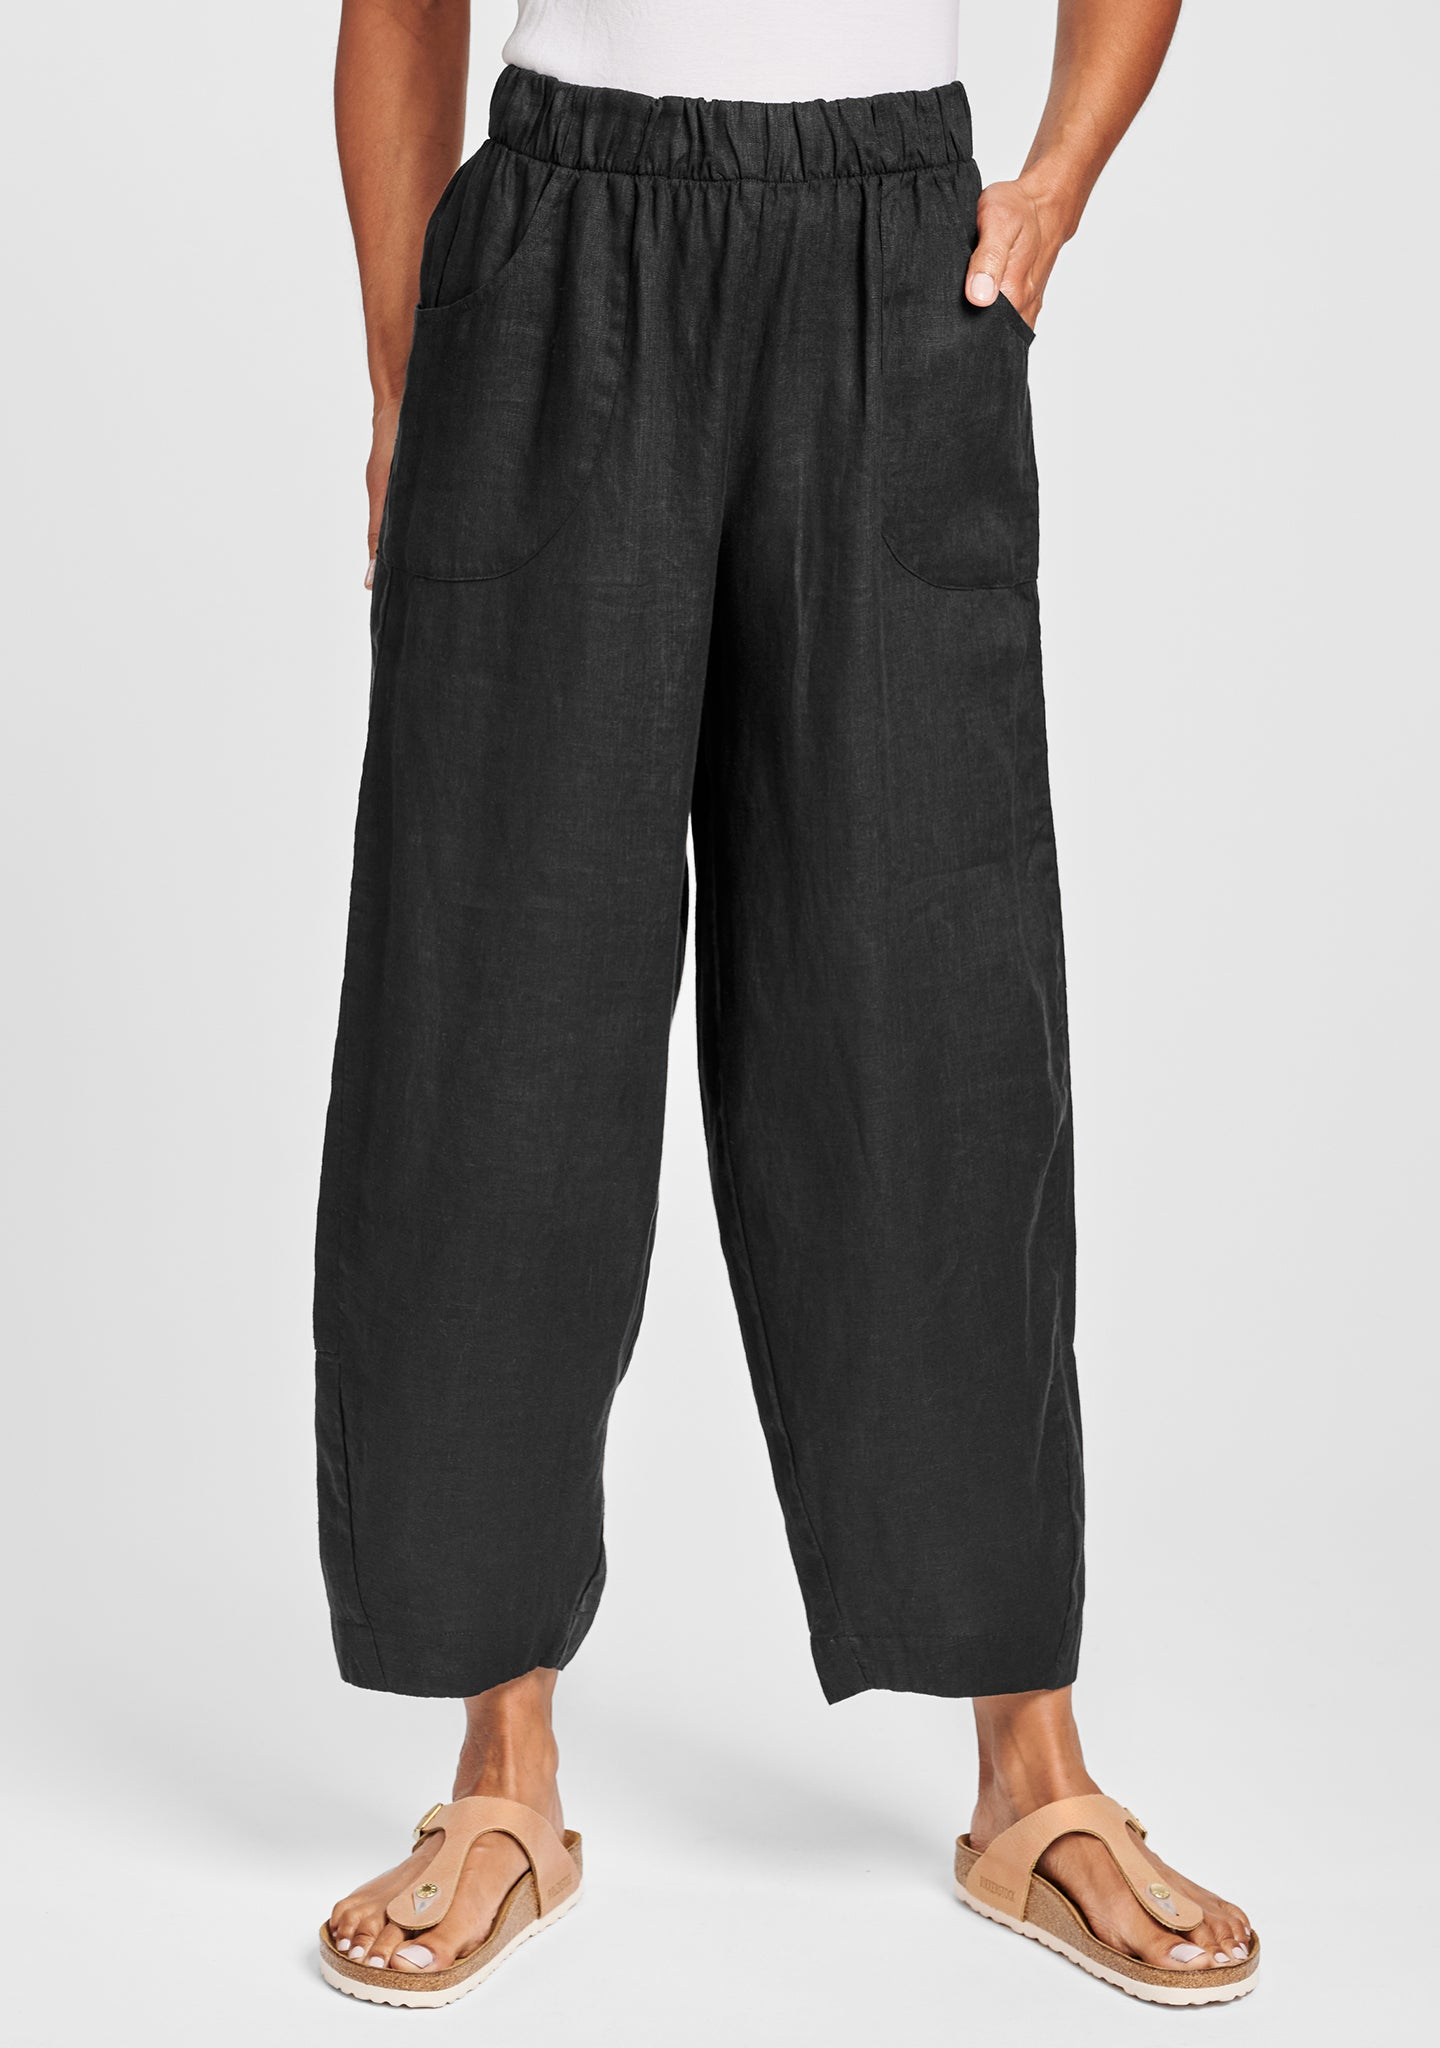 seamly pant linen pants black